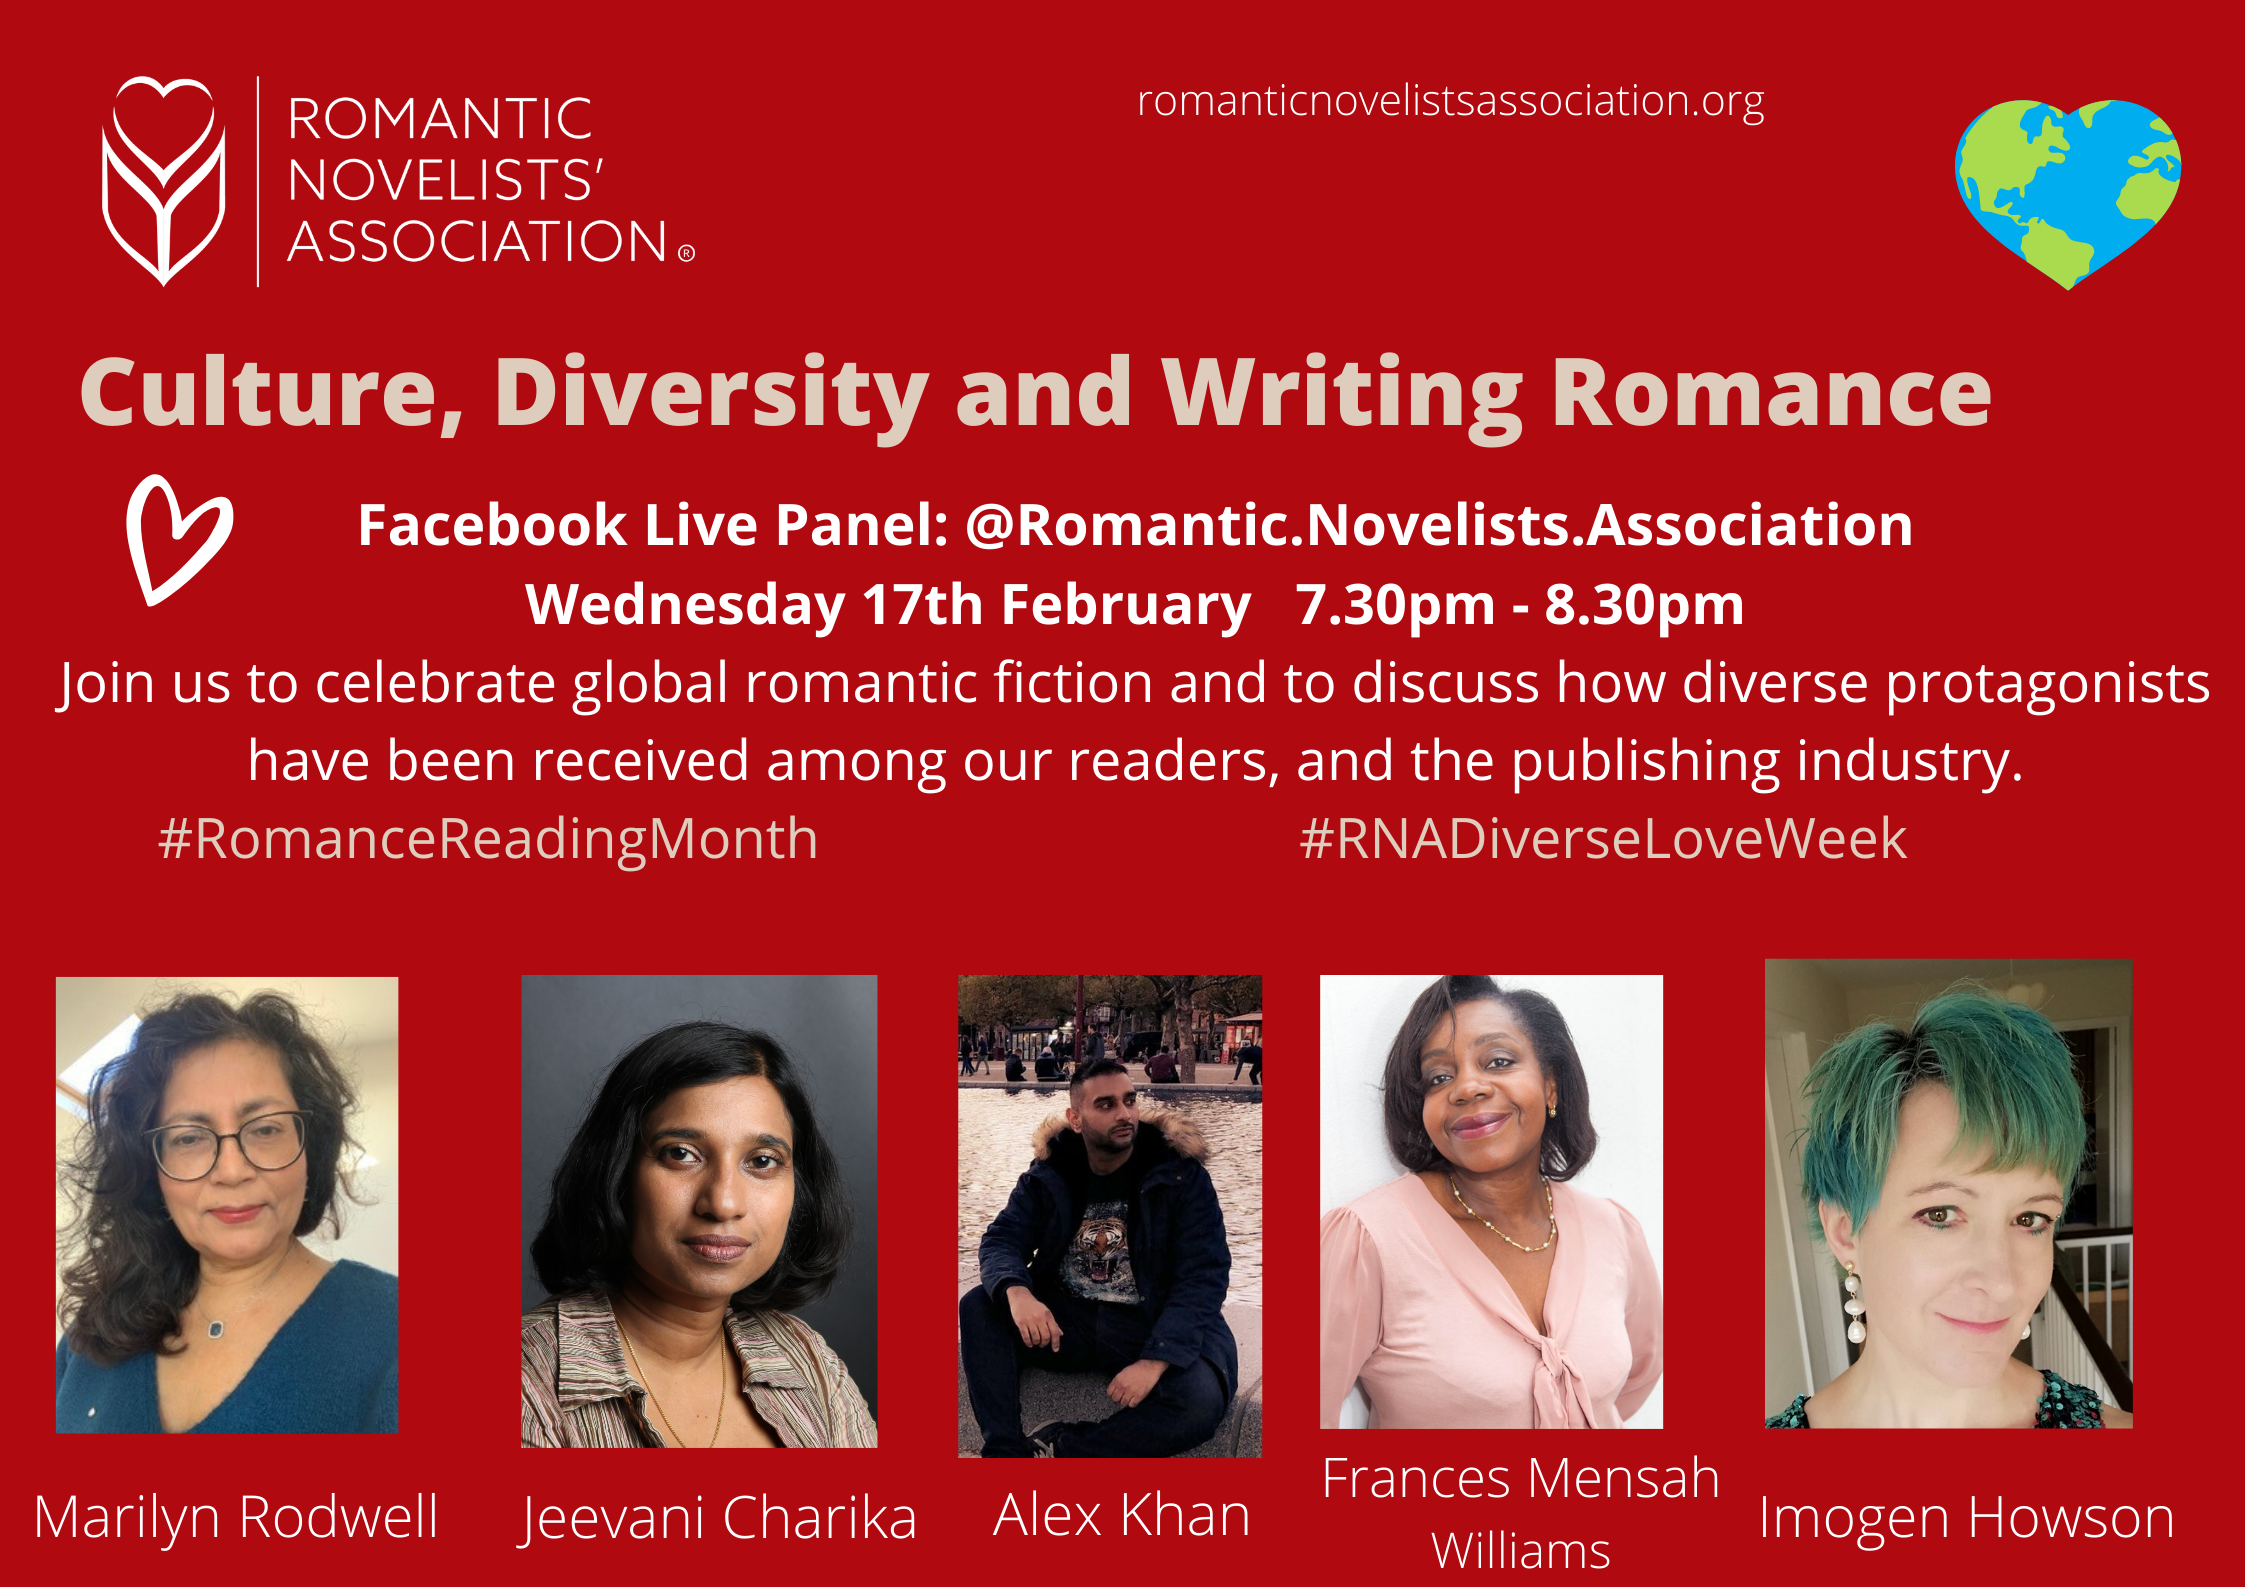 Culture and diversity in romance 17 Feb 7.30